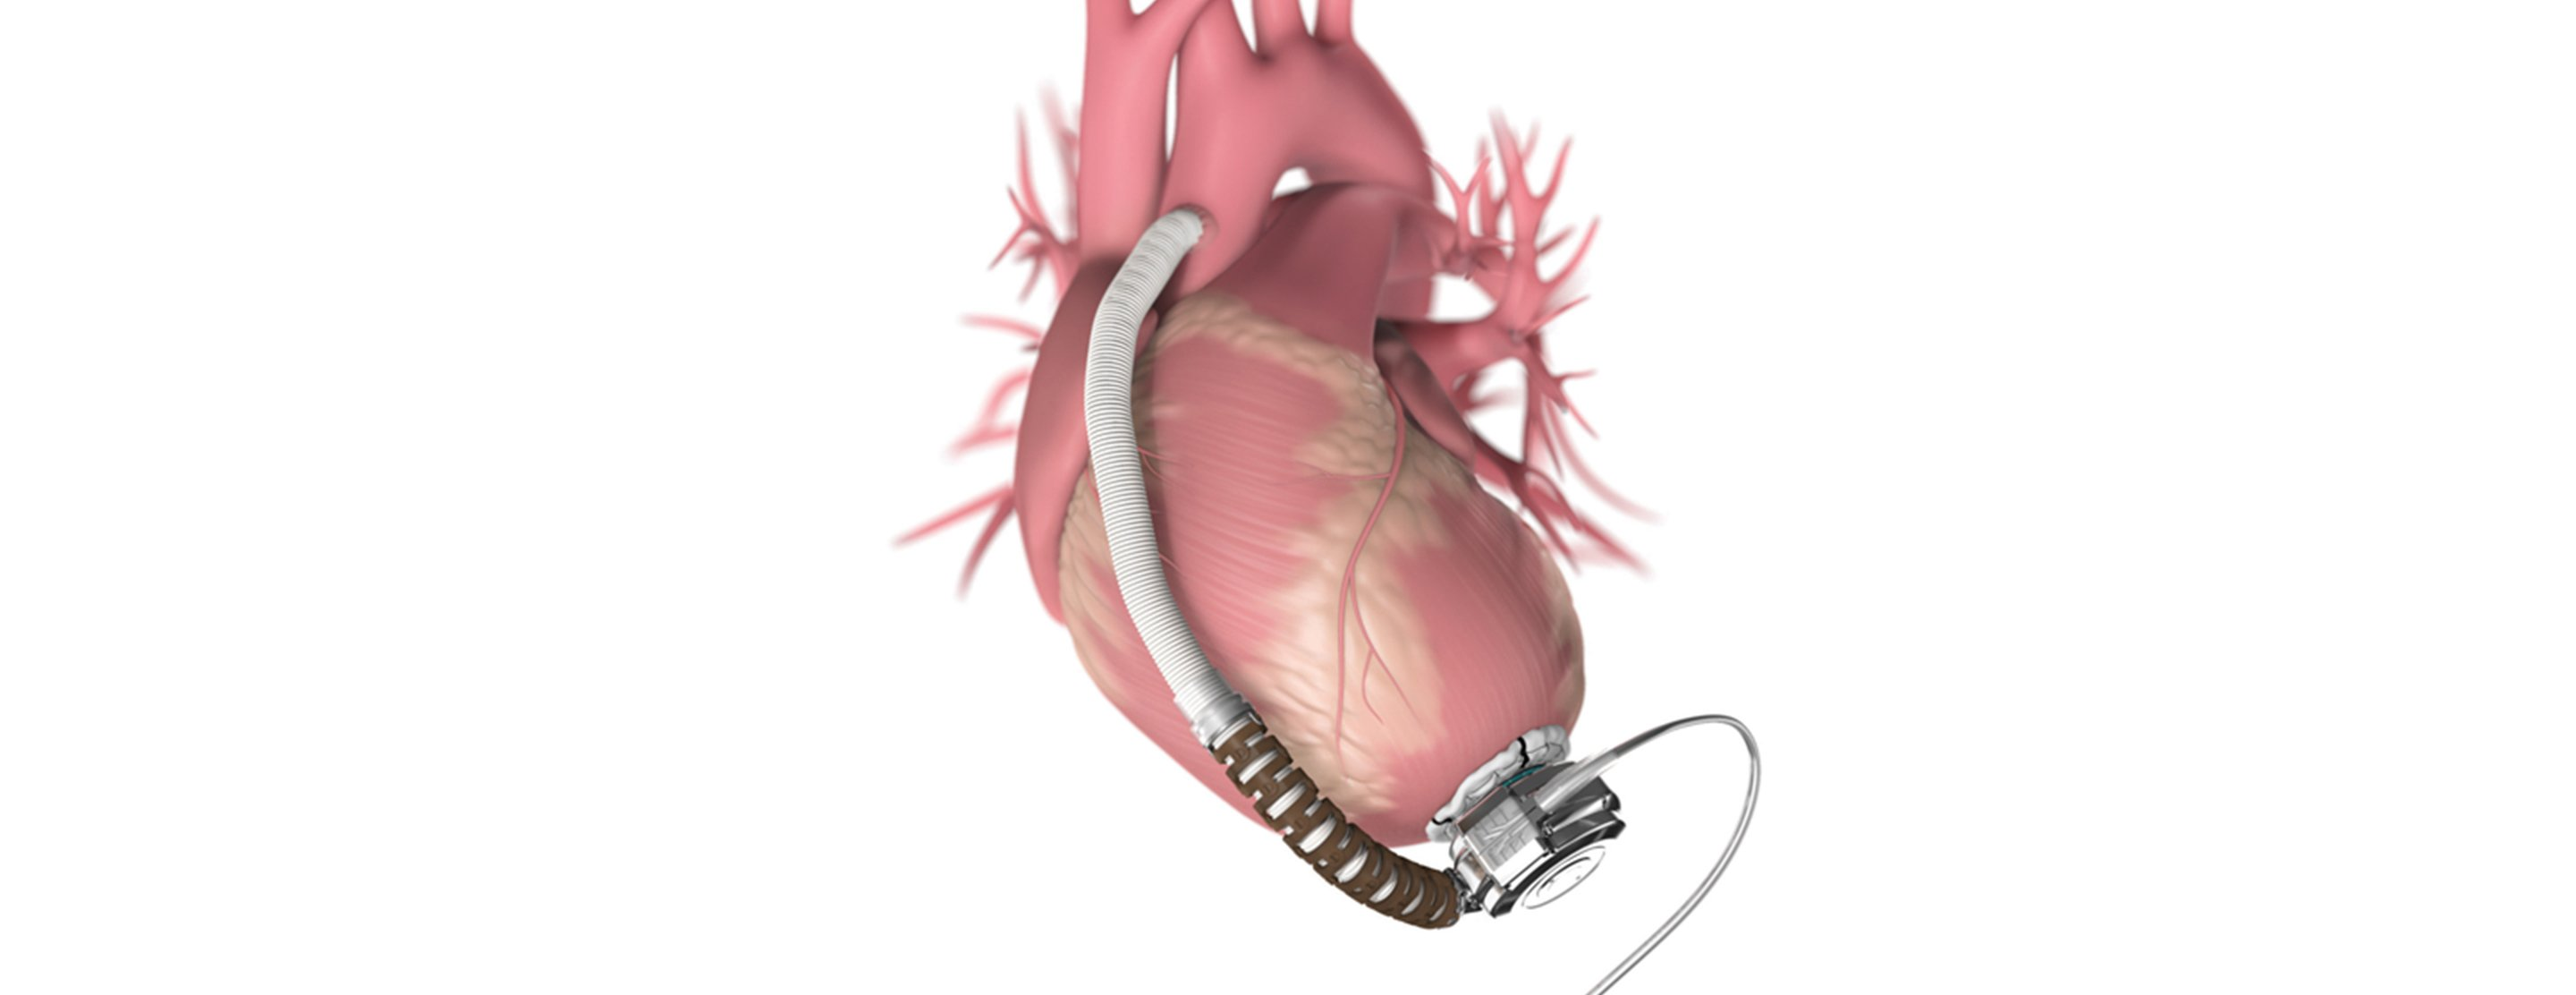 Image result for Cardiac Assist Devices